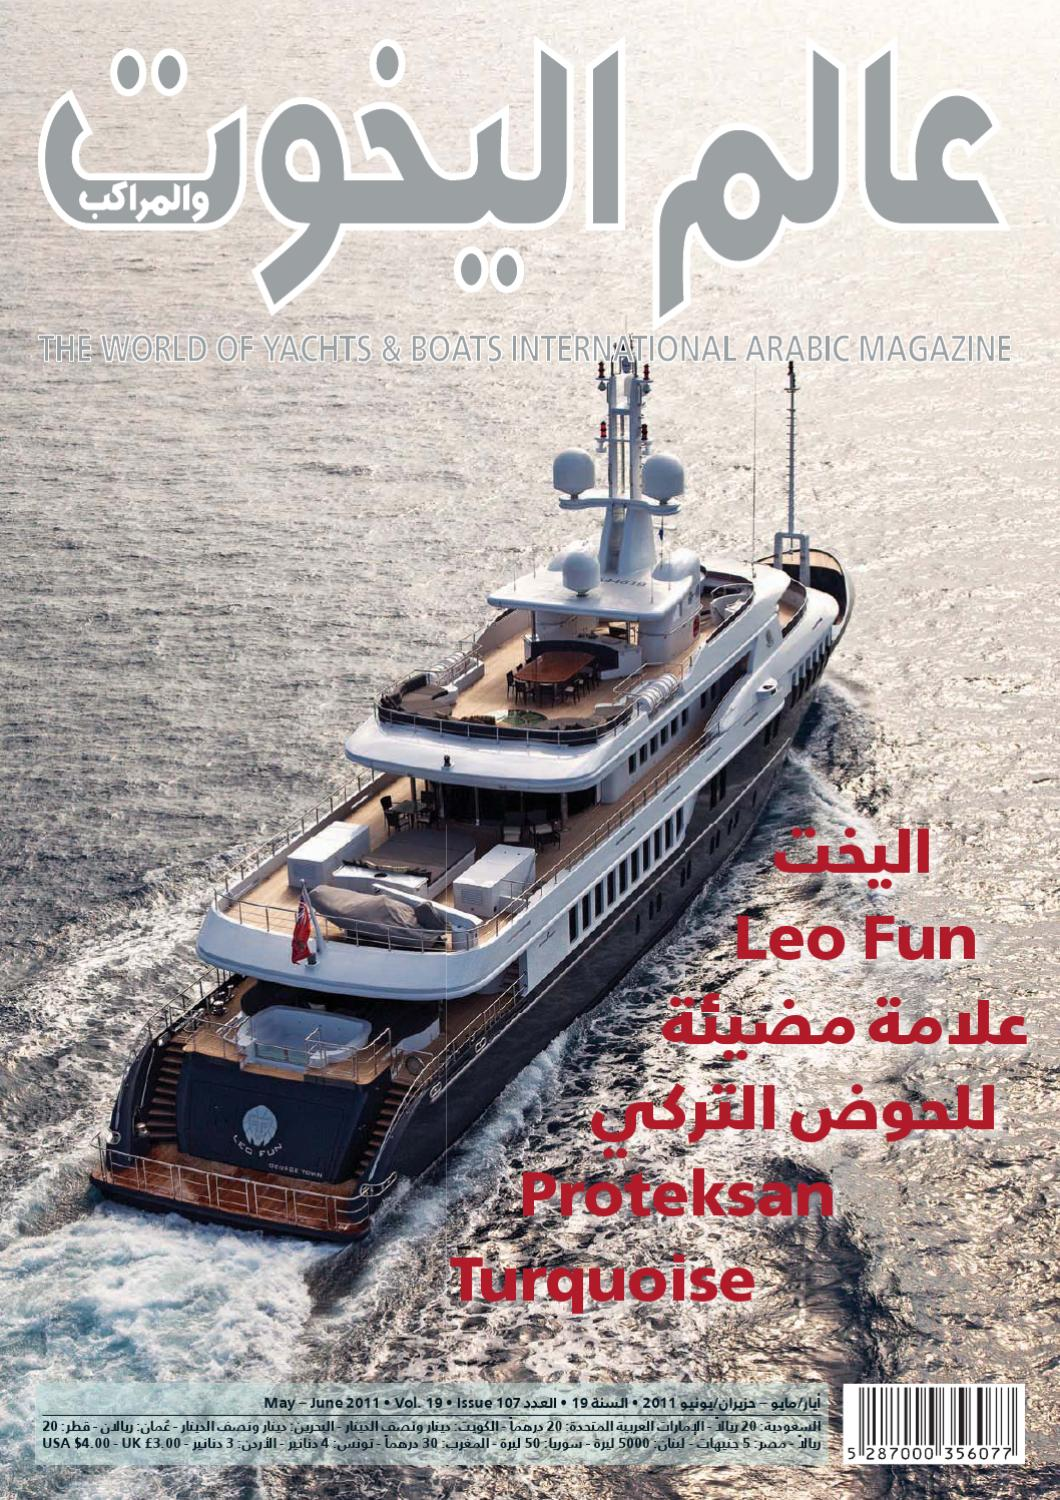 bf10cb1b0 WOY - May/June 2011 by The World of Yachts & Boats - issuu